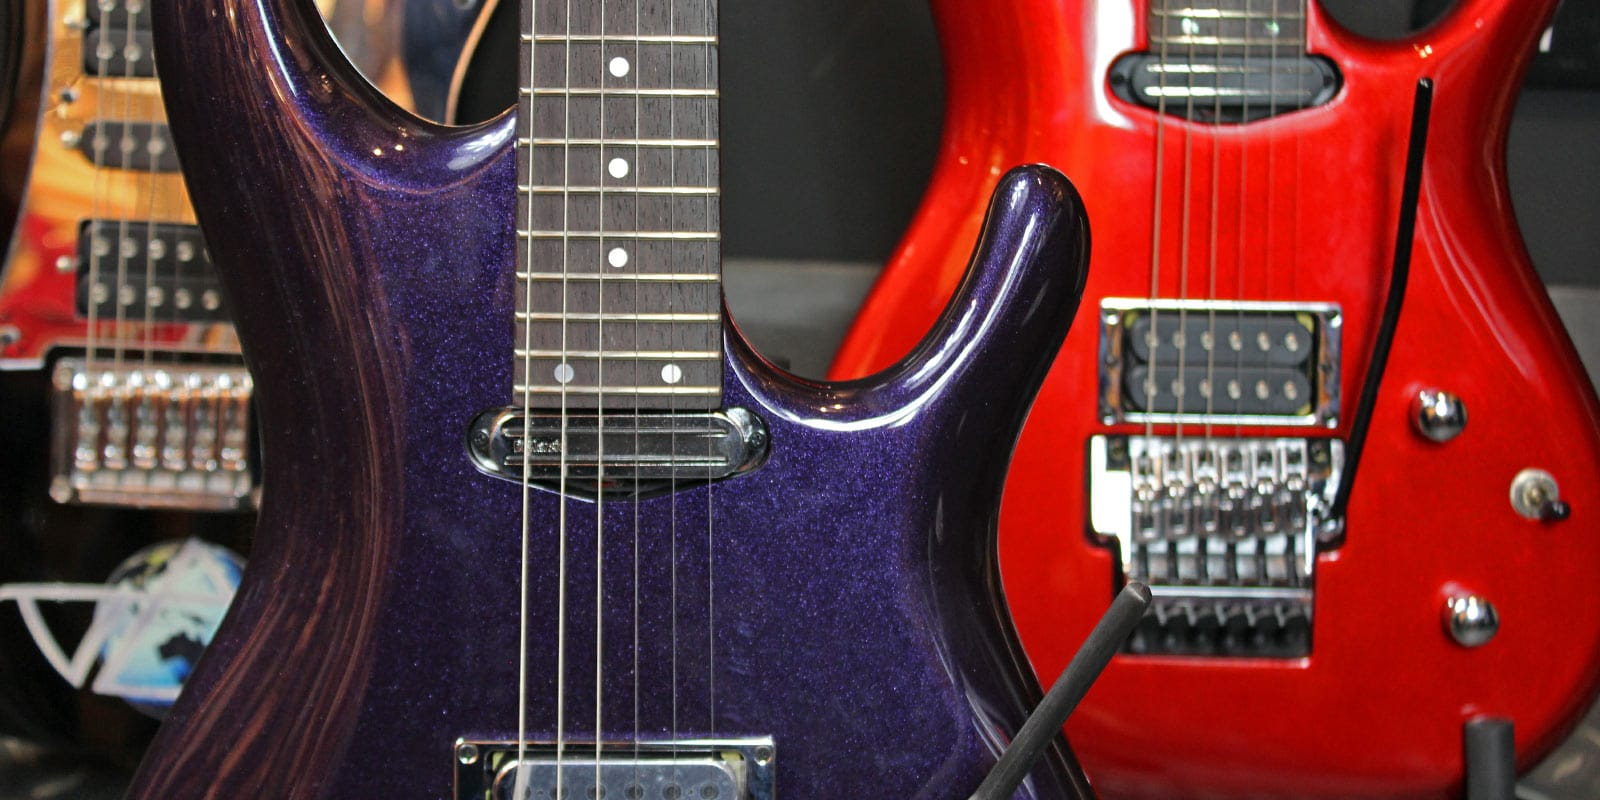 Ibanez JS2450 test review